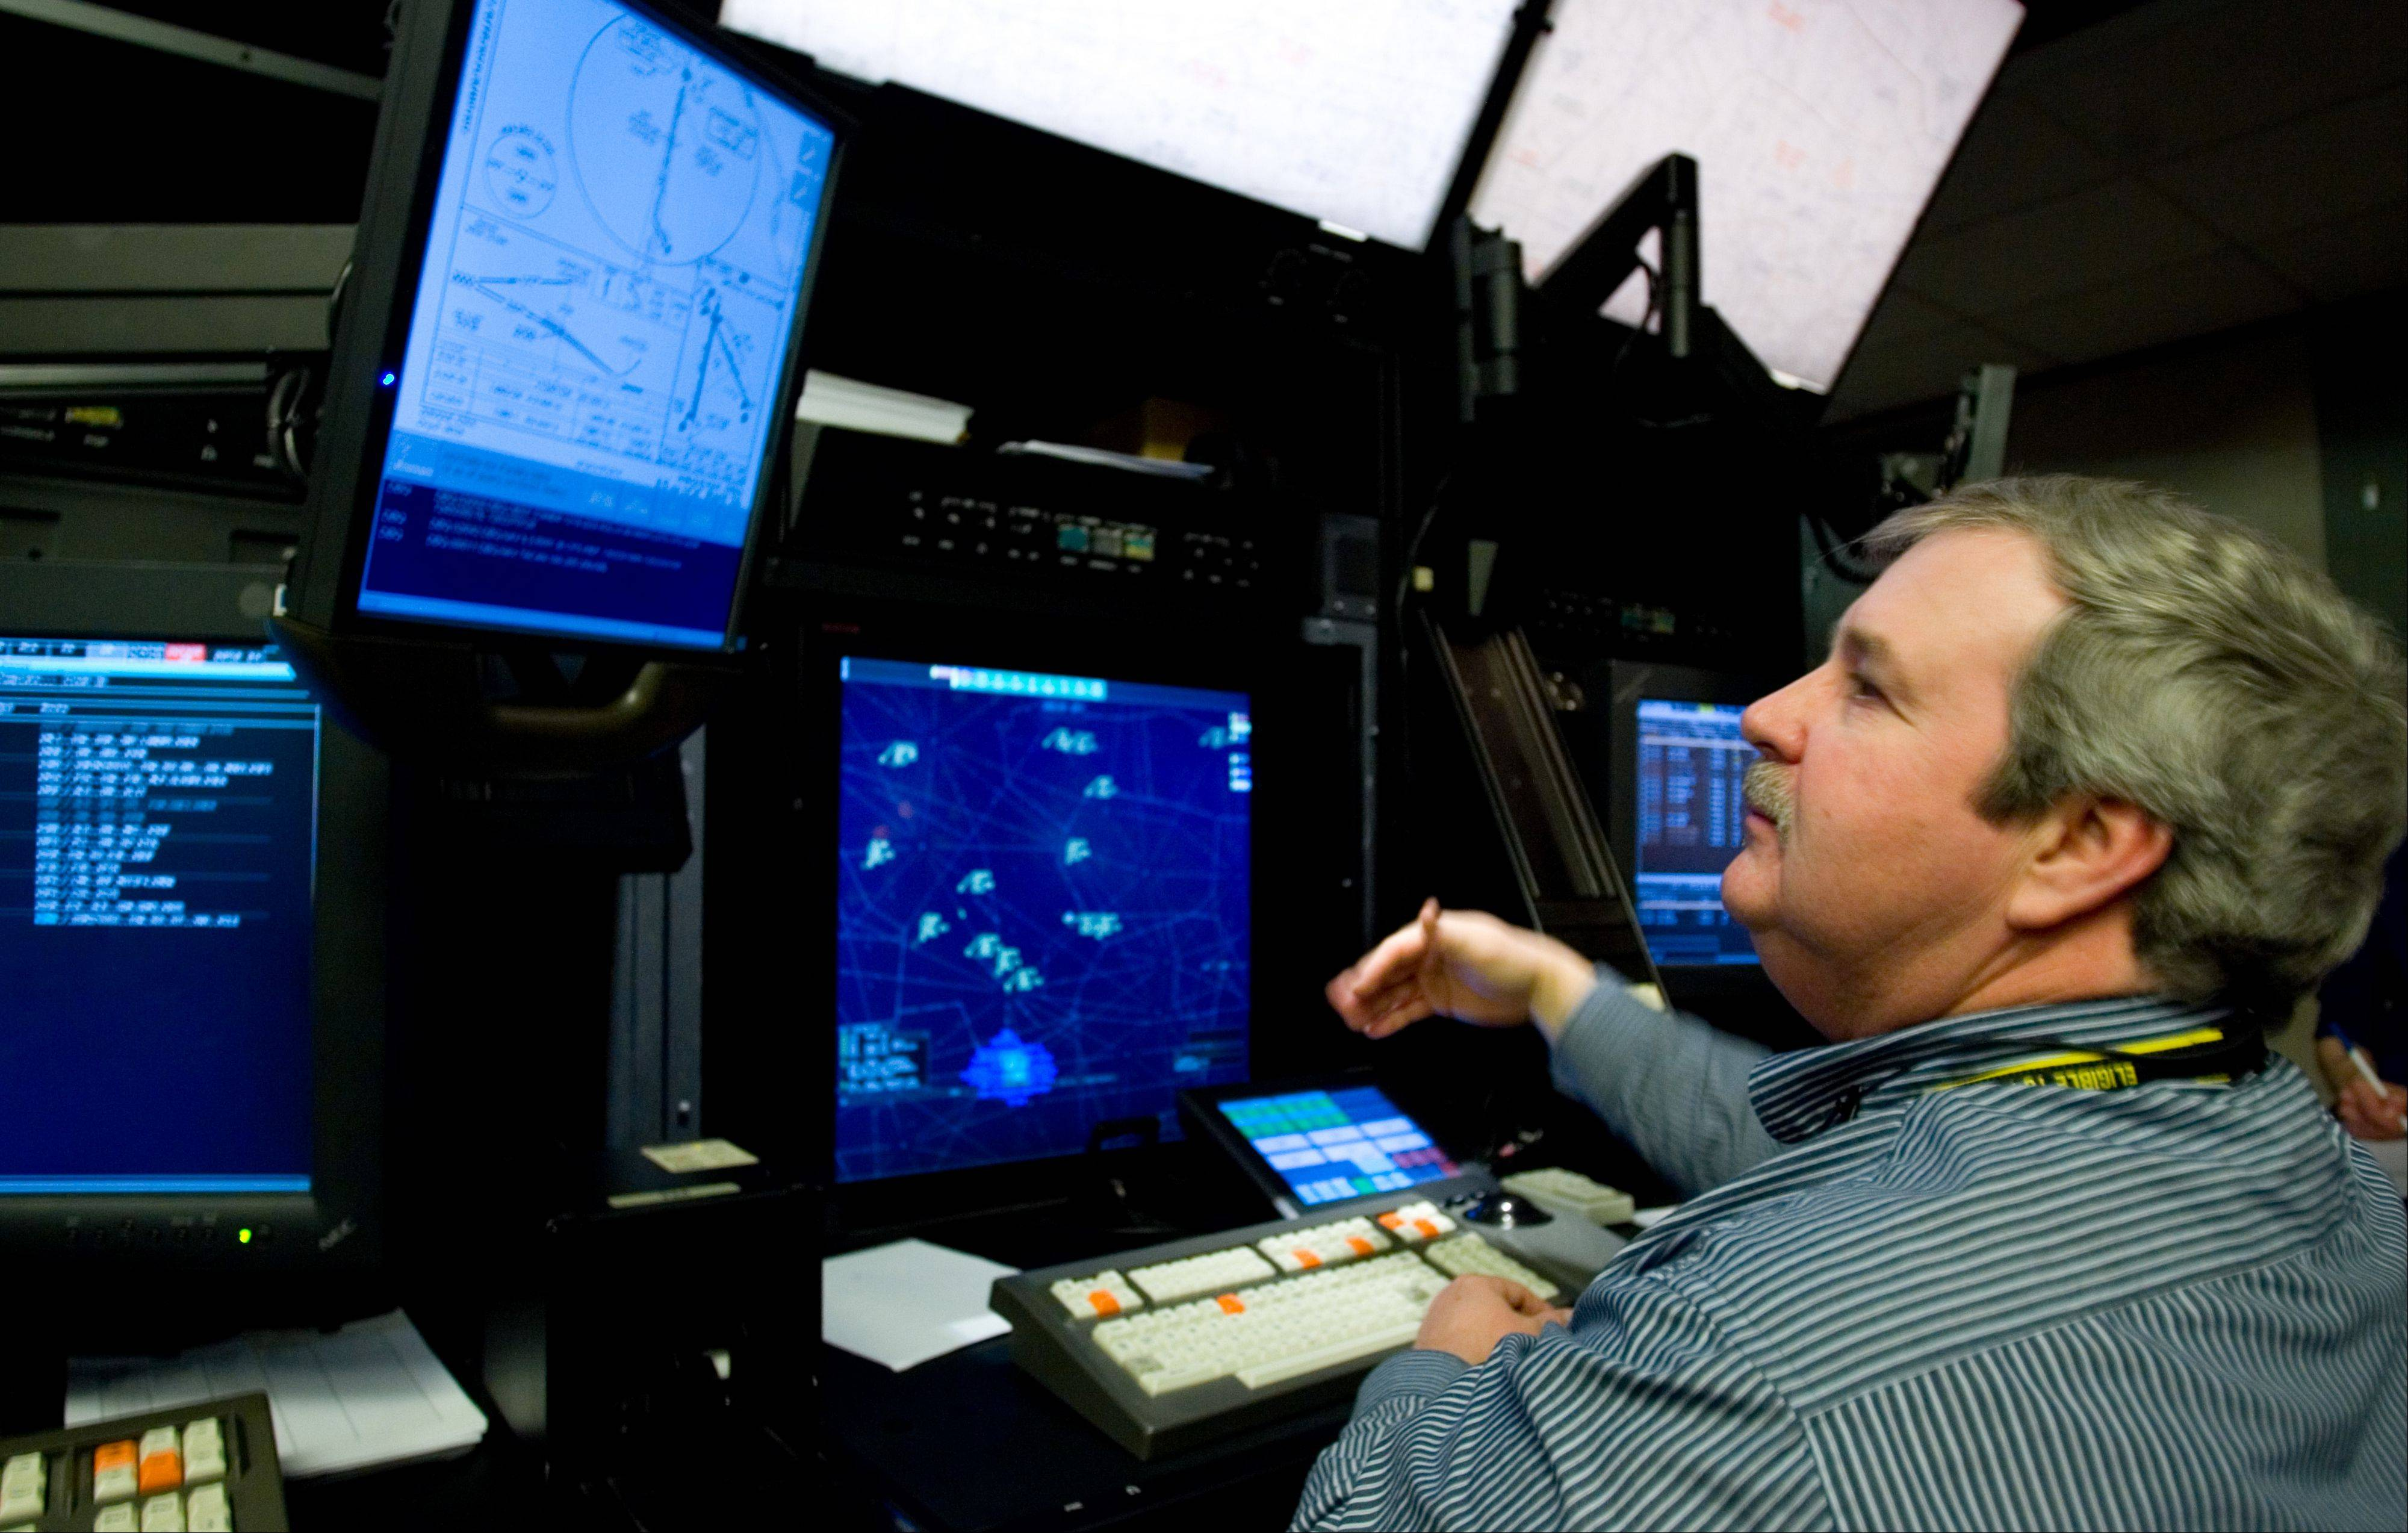 Traffic controller Steve McGreevy, above, discusses how he and his co-worker Guy Lieser maneuvered a distressed pilot back safely to the ground from the Air Route Traffic Control Center in Aurora. In their dynamic simulator is the approach plate for the specific airport that the pilot was guided to.